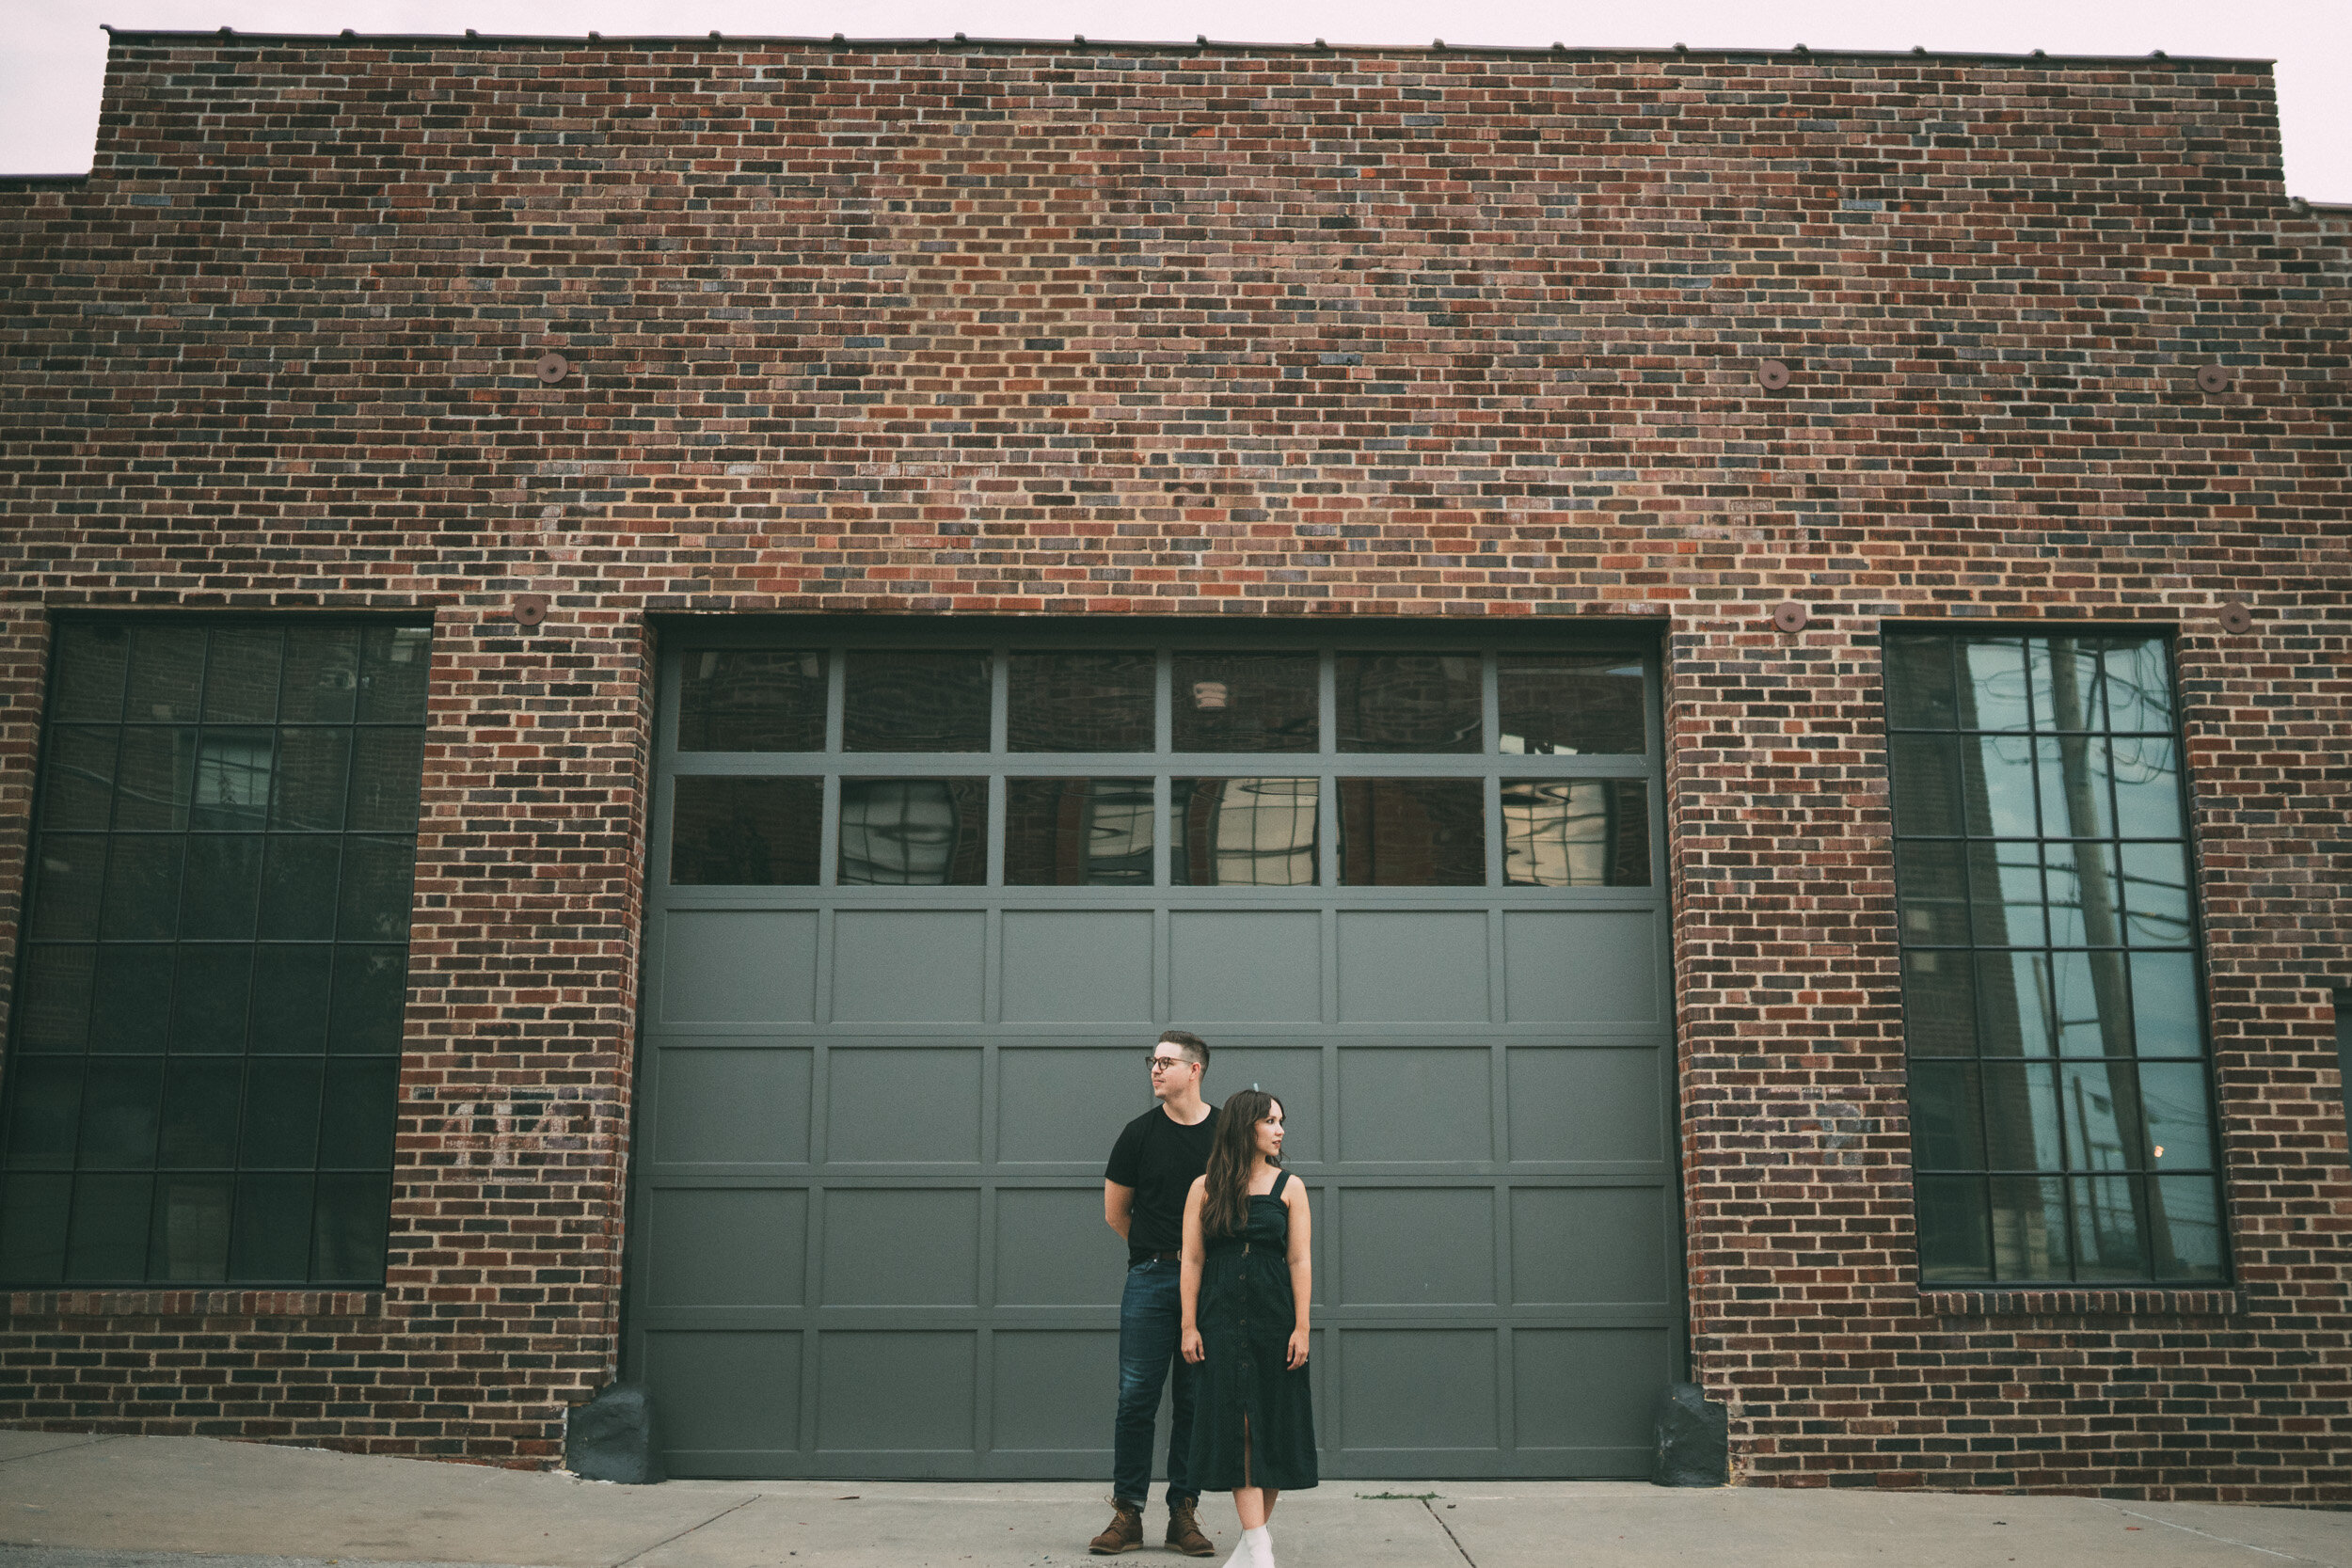 engagement photos kansas city river market in front of garage door on brick building